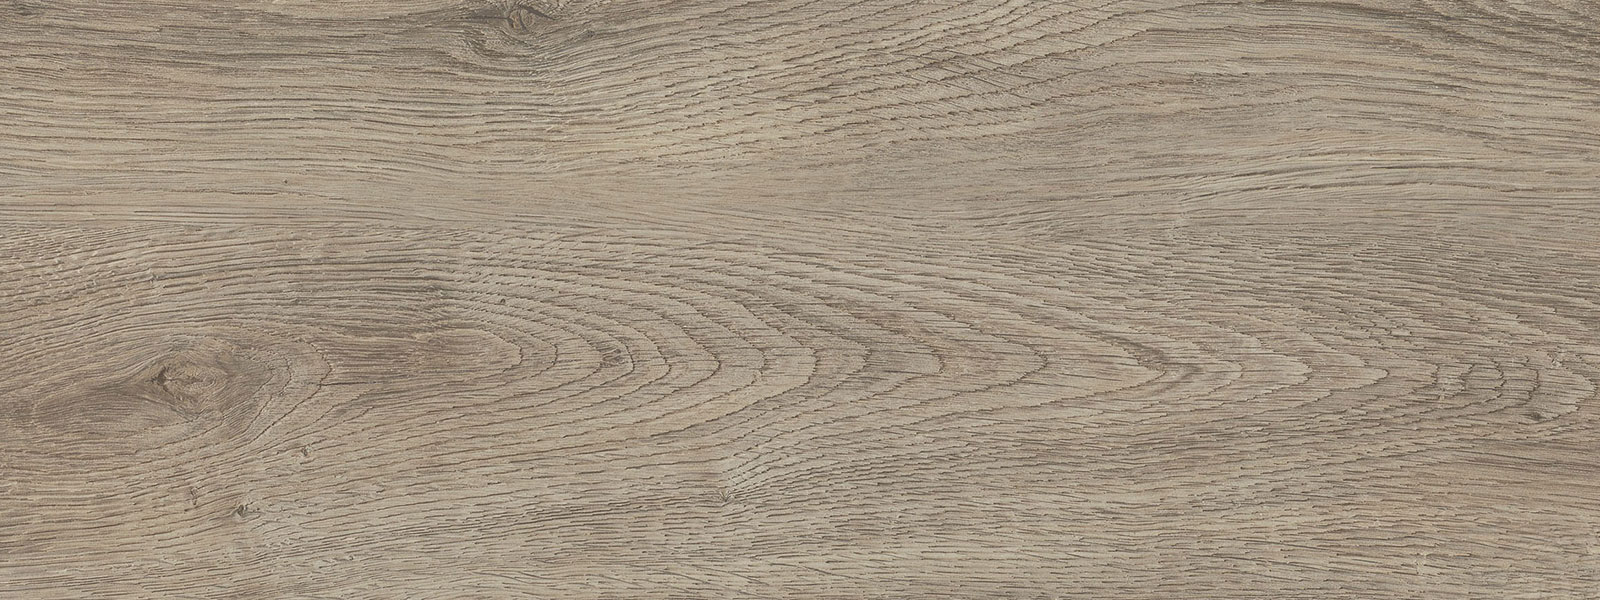 Tundra Oak Weathered